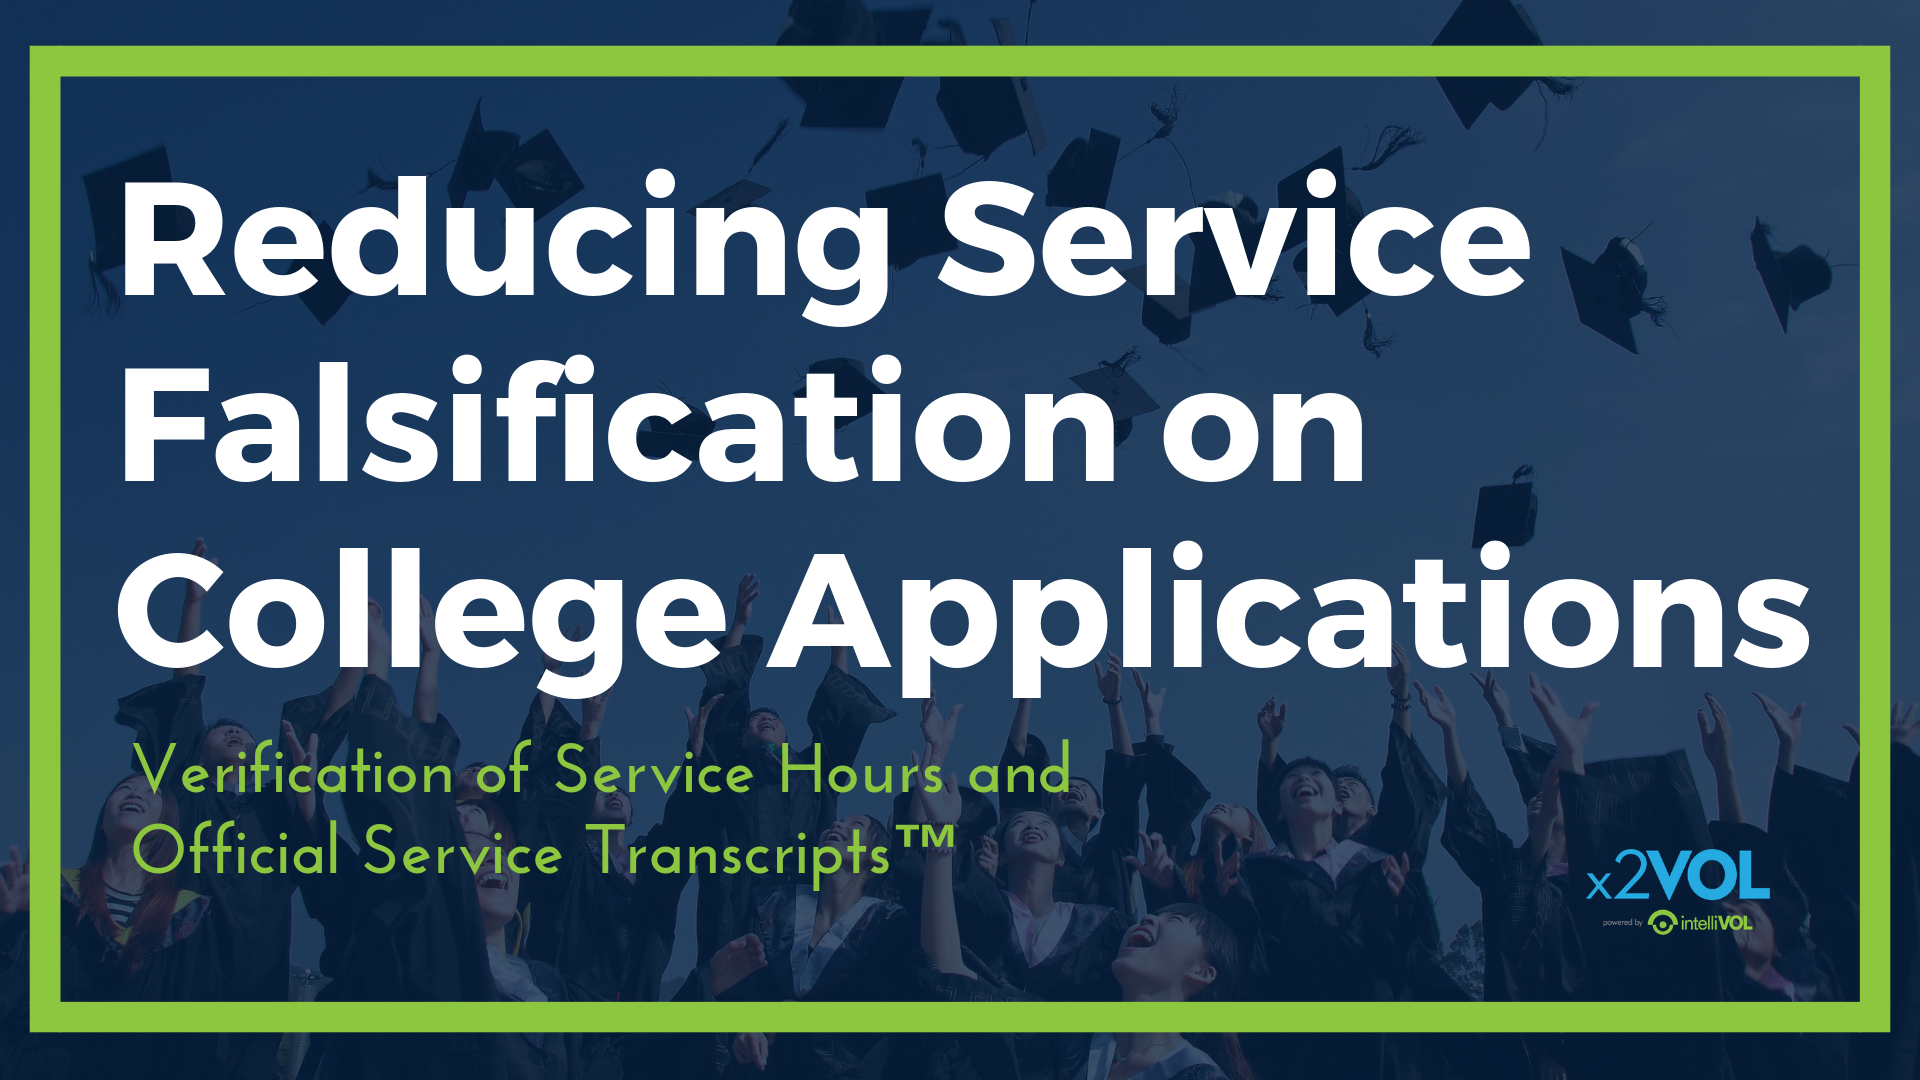 Reducing Service Falsification on College Applications